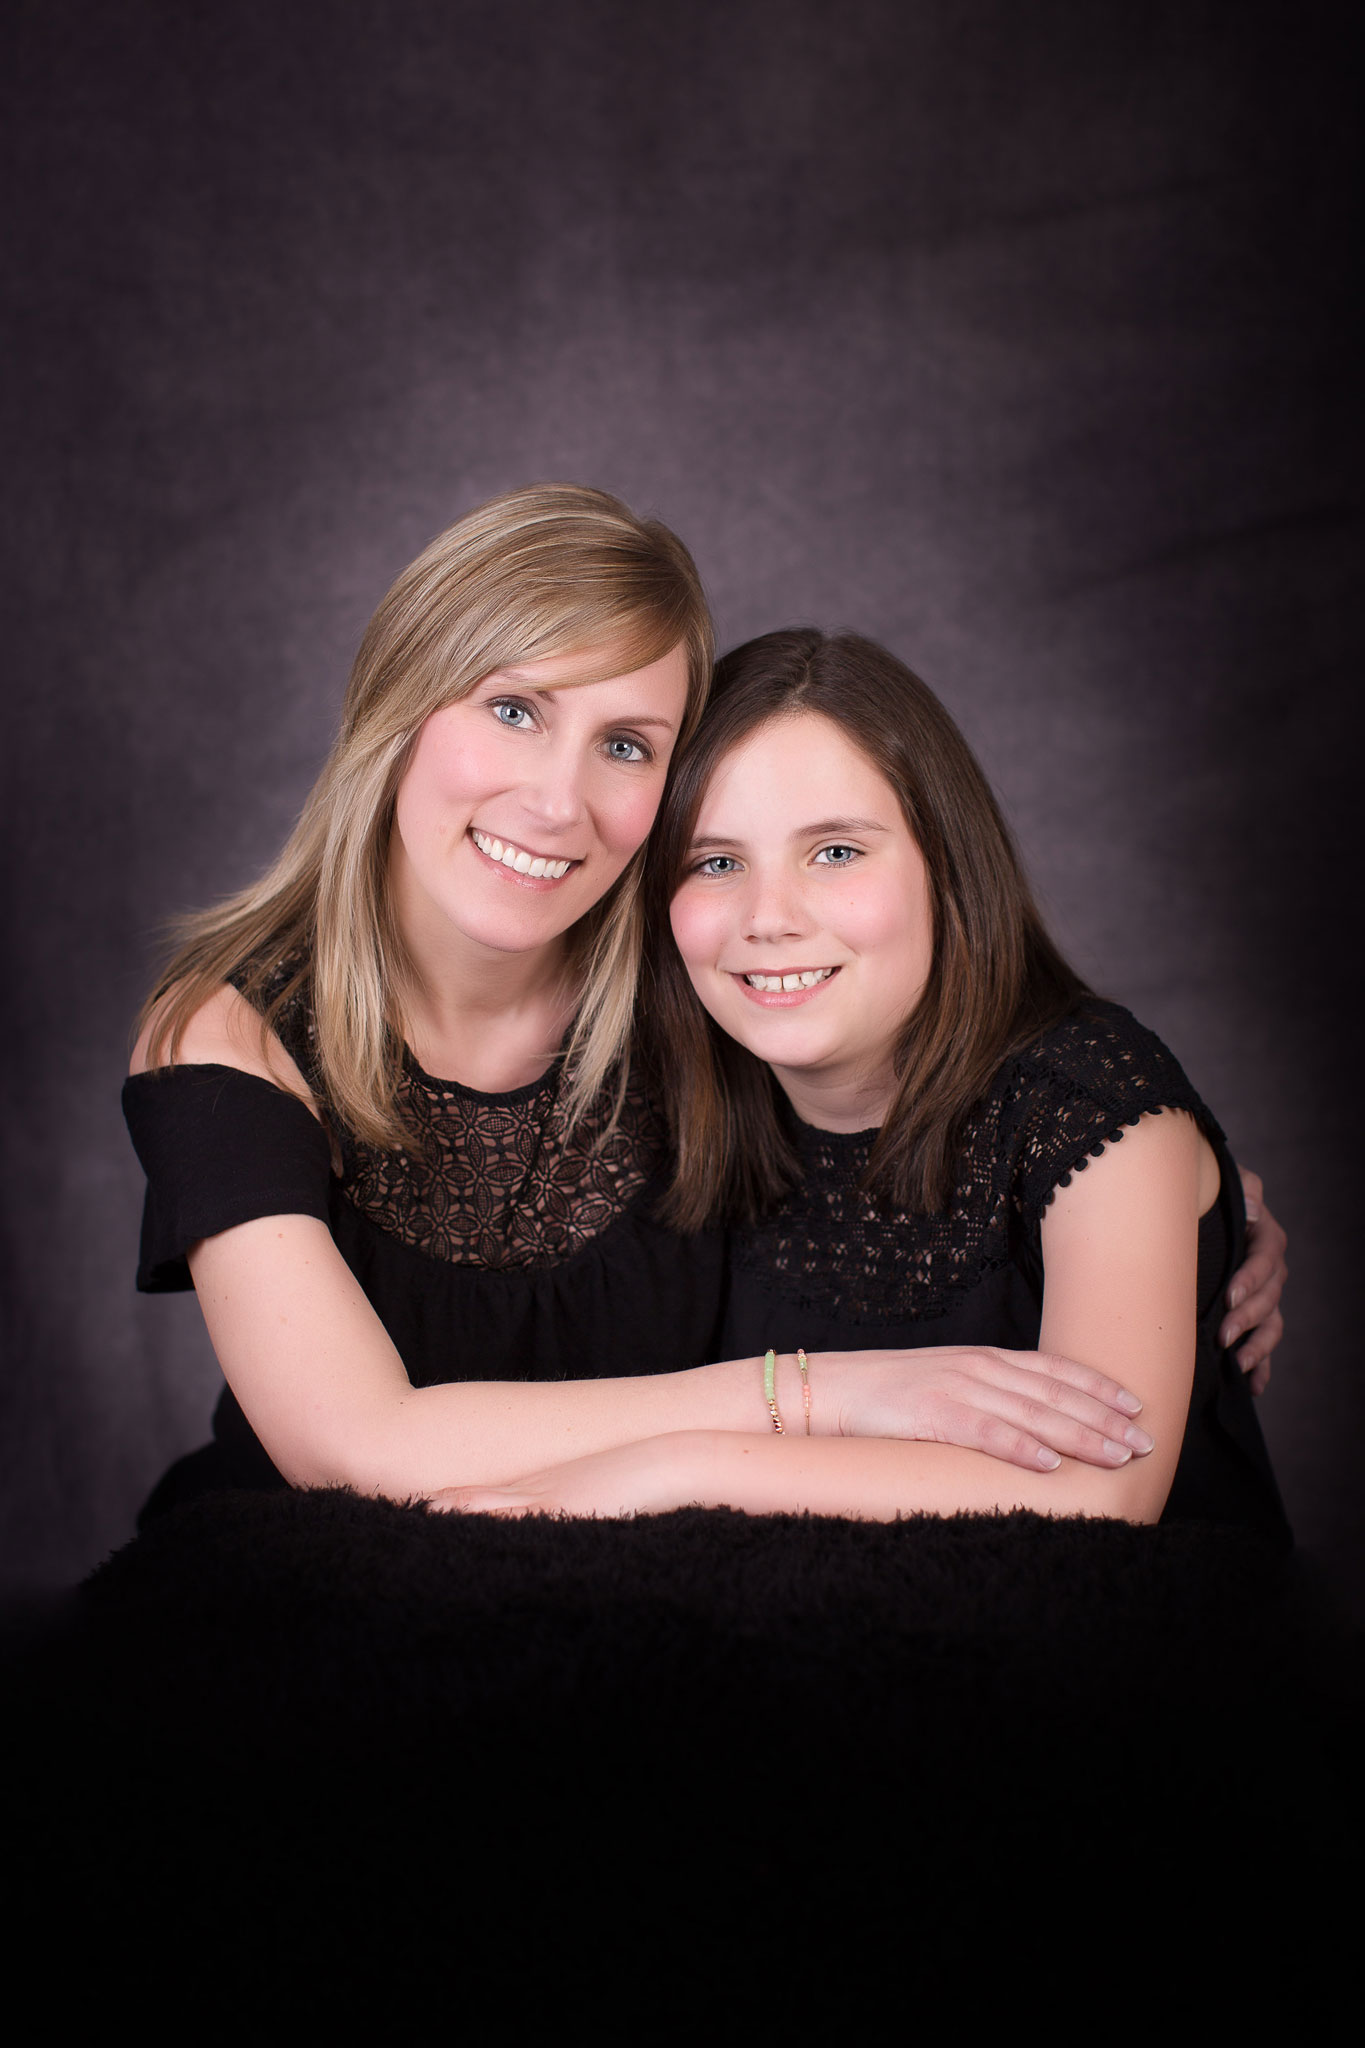 Mother and daughter posing for family session